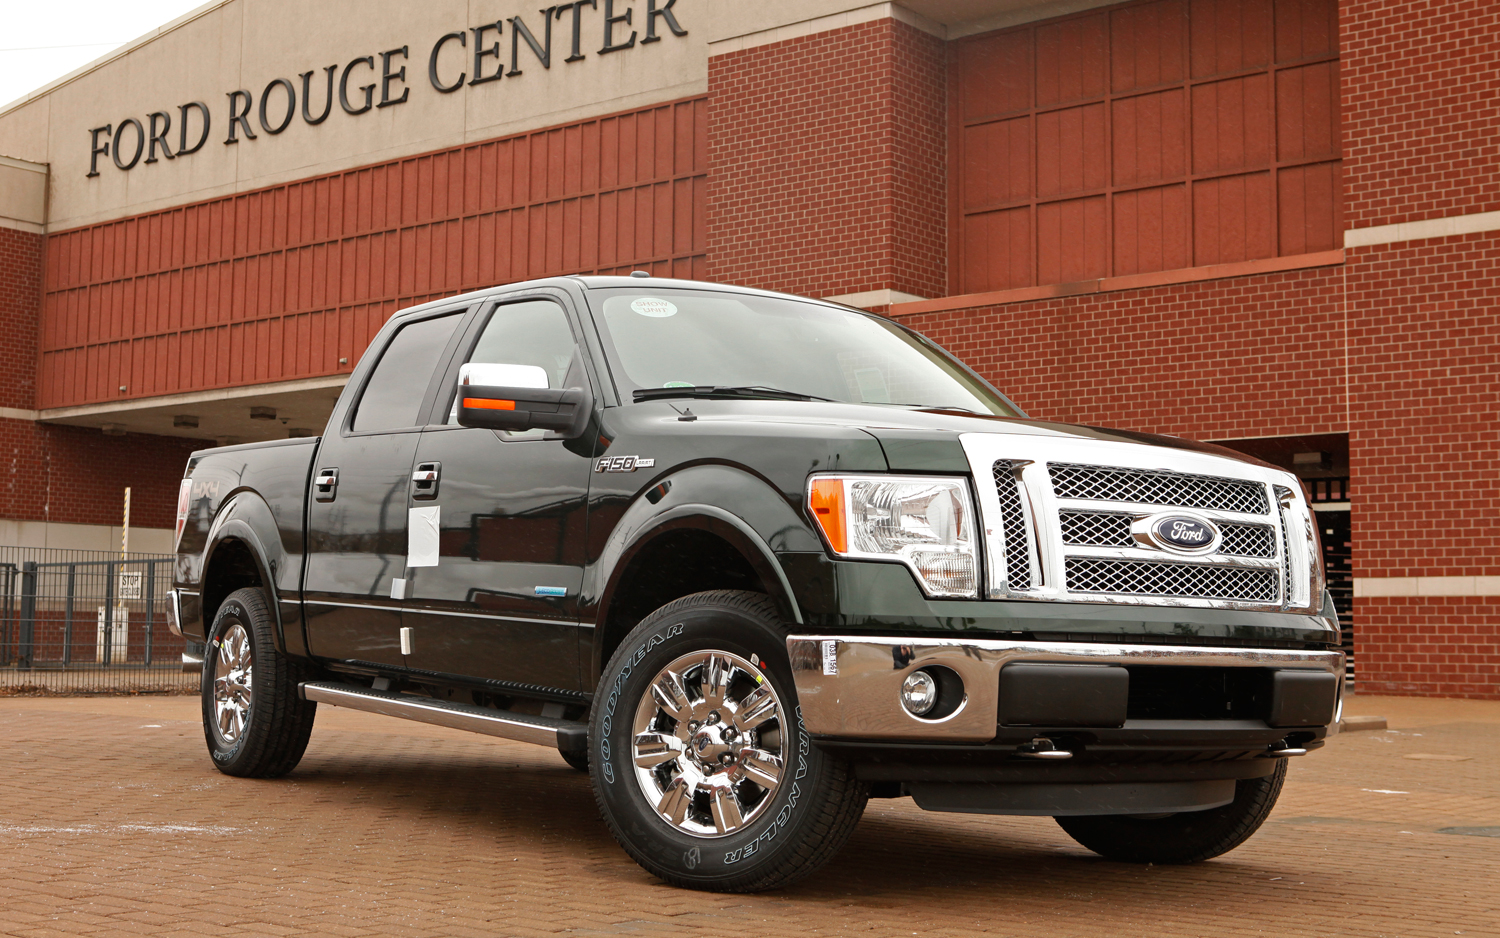 2012 Ford F 150 Lariat 4x4 EcoBoost Build Up And Arrival